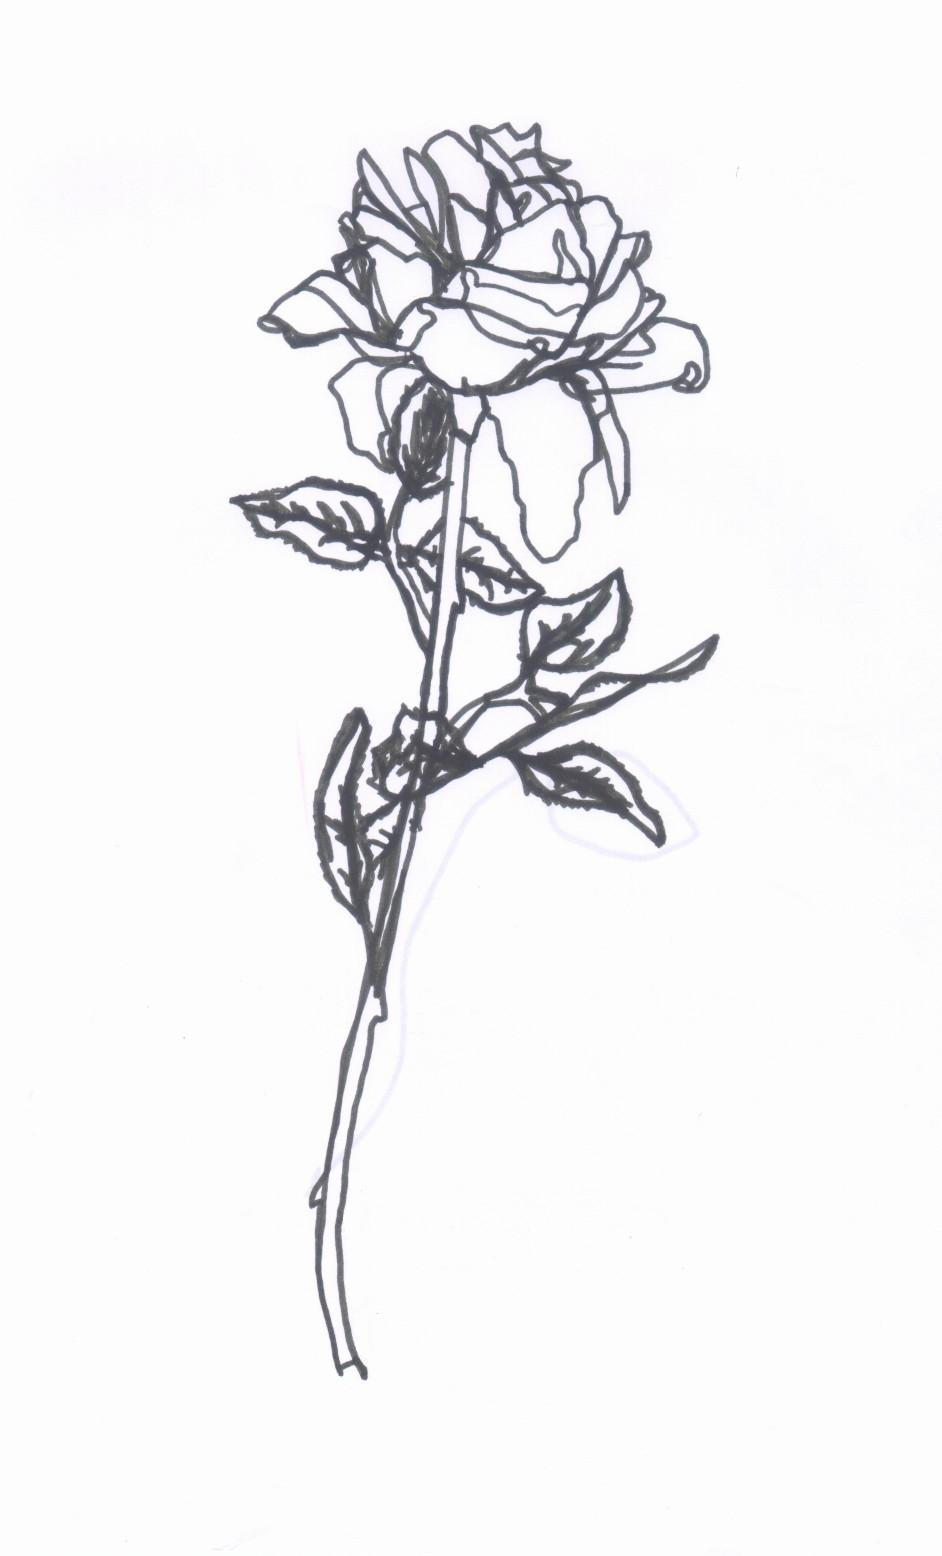 Contour Line Drawing Of A Flower : Rose contour drawing by sorsimmanis on deviantart